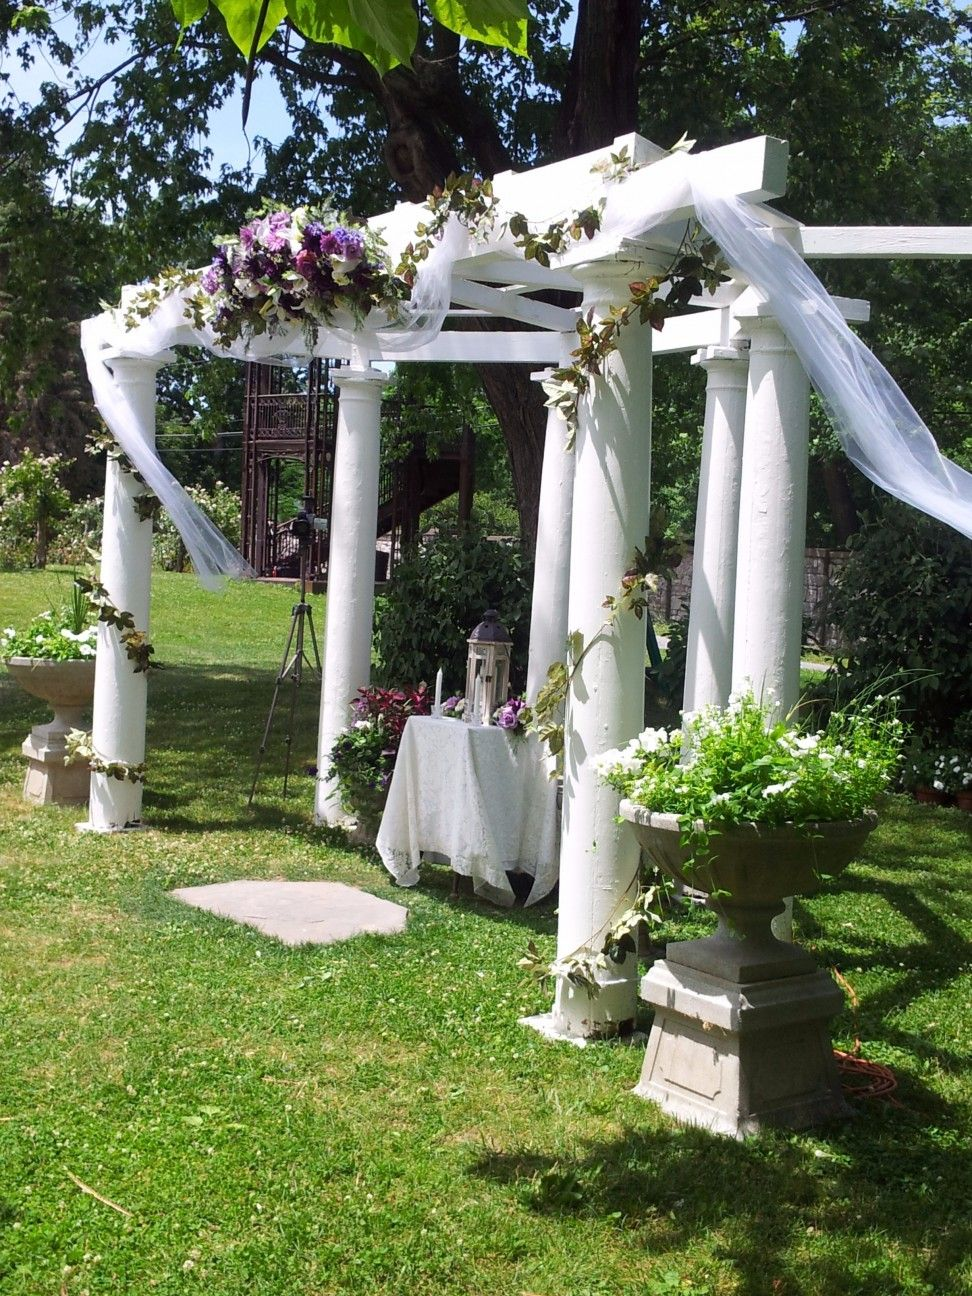 White Vinyl Pergola Will Arbor With White Fabric Wedding Canopy And White Fabric Table Cloth Plus & White Vinyl Pergola Will Arbor With White Fabric Wedding Canopy ...